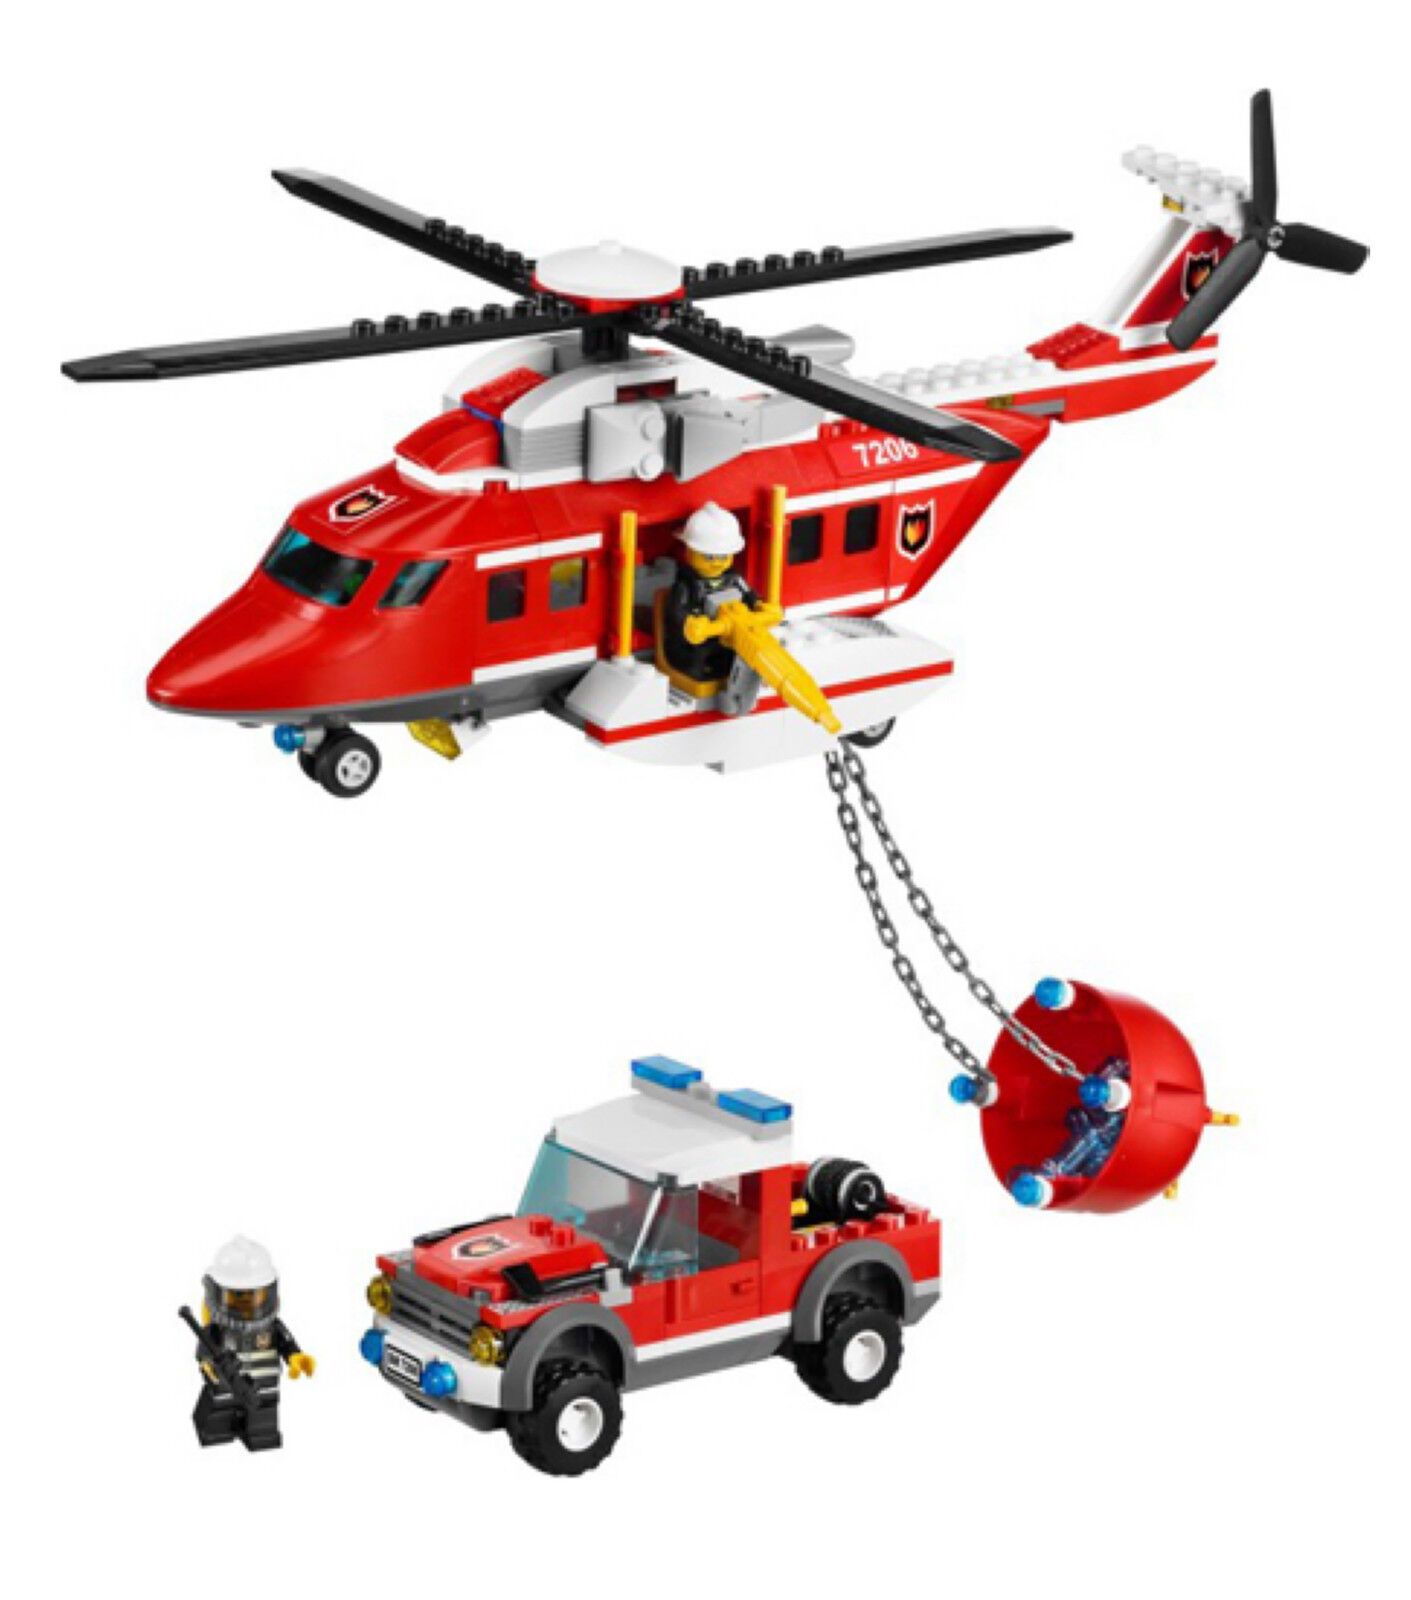 Brand New LEGO CITY 7206 Fire Helicopter 342 Part Part Part Pieces with 3 Mini Figures 3daa5a